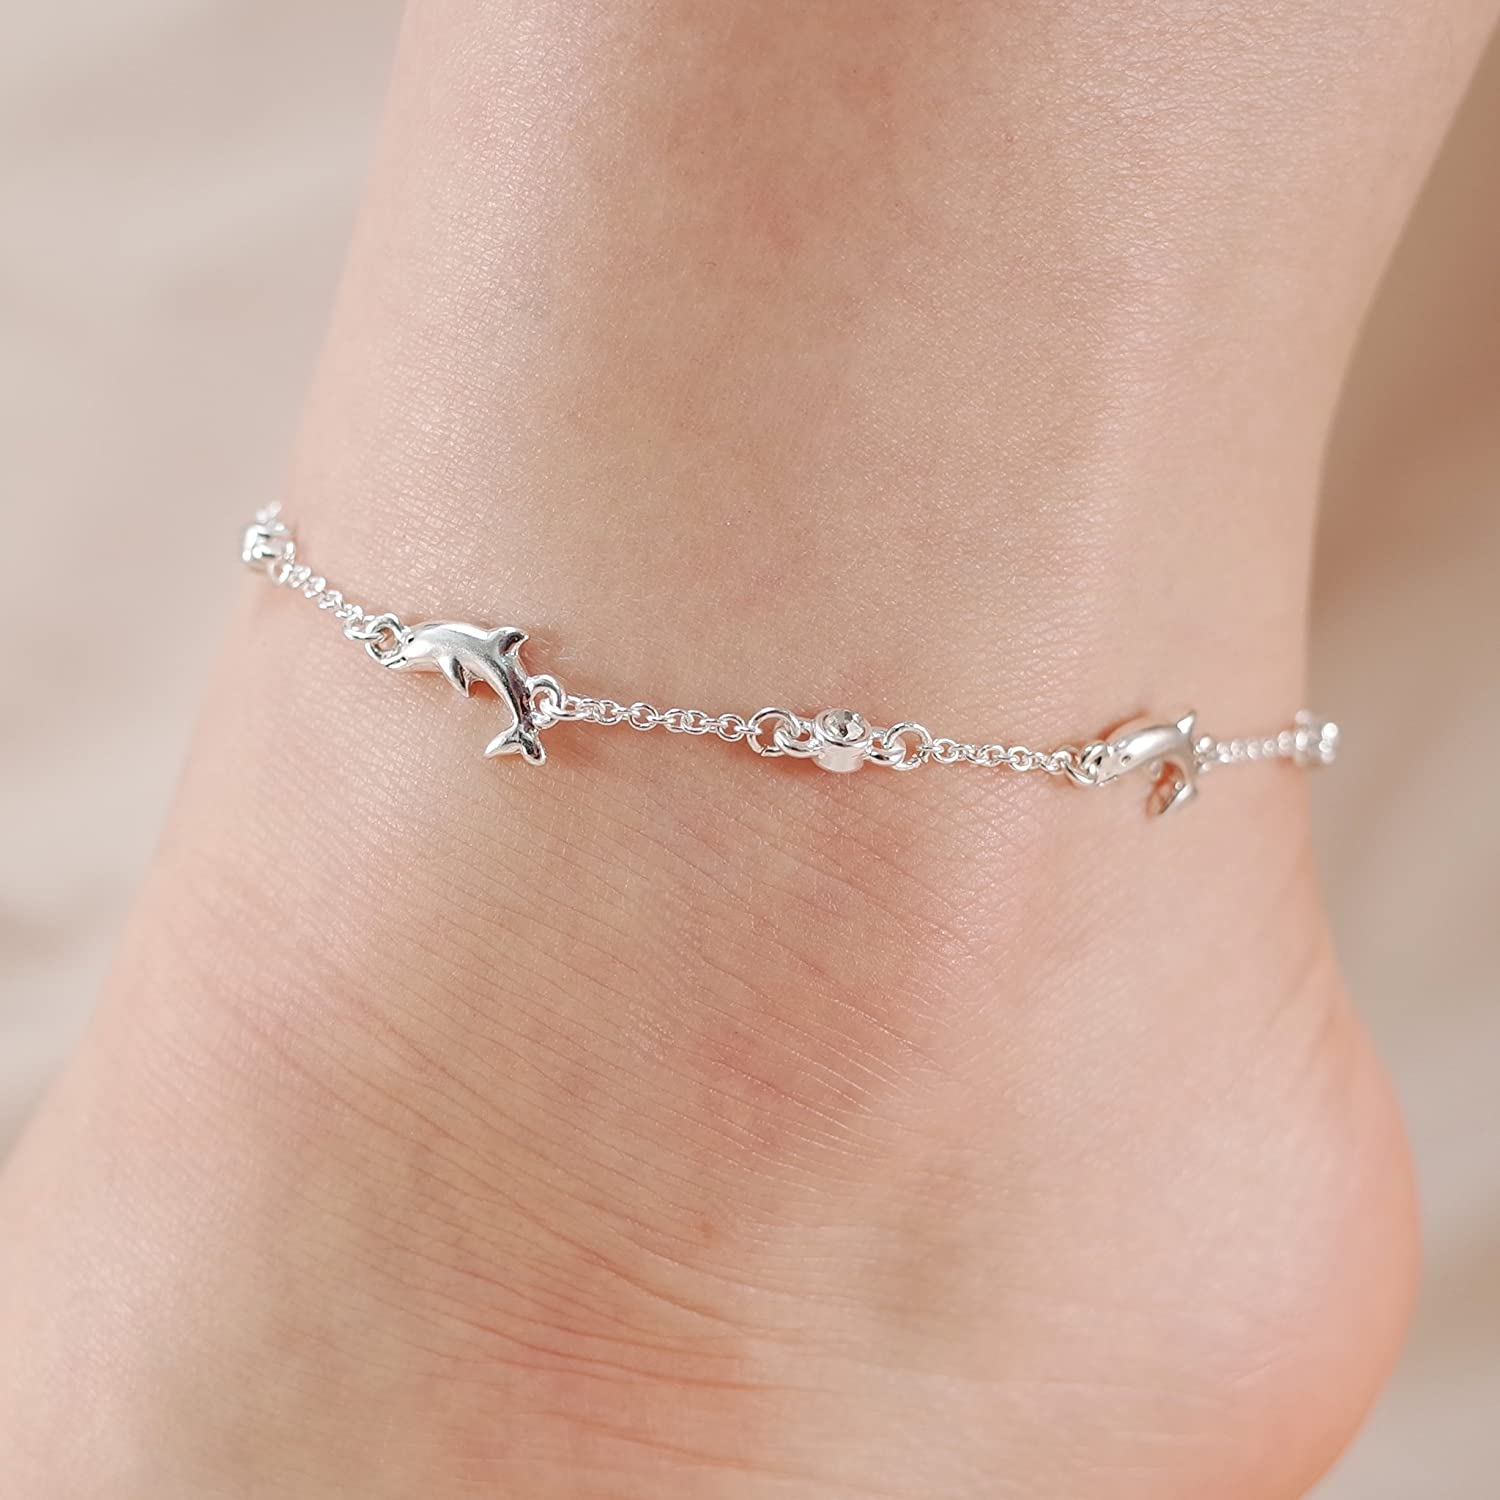 Jucicle Dolphin Charm Crystal Rhinestone Link Anklet